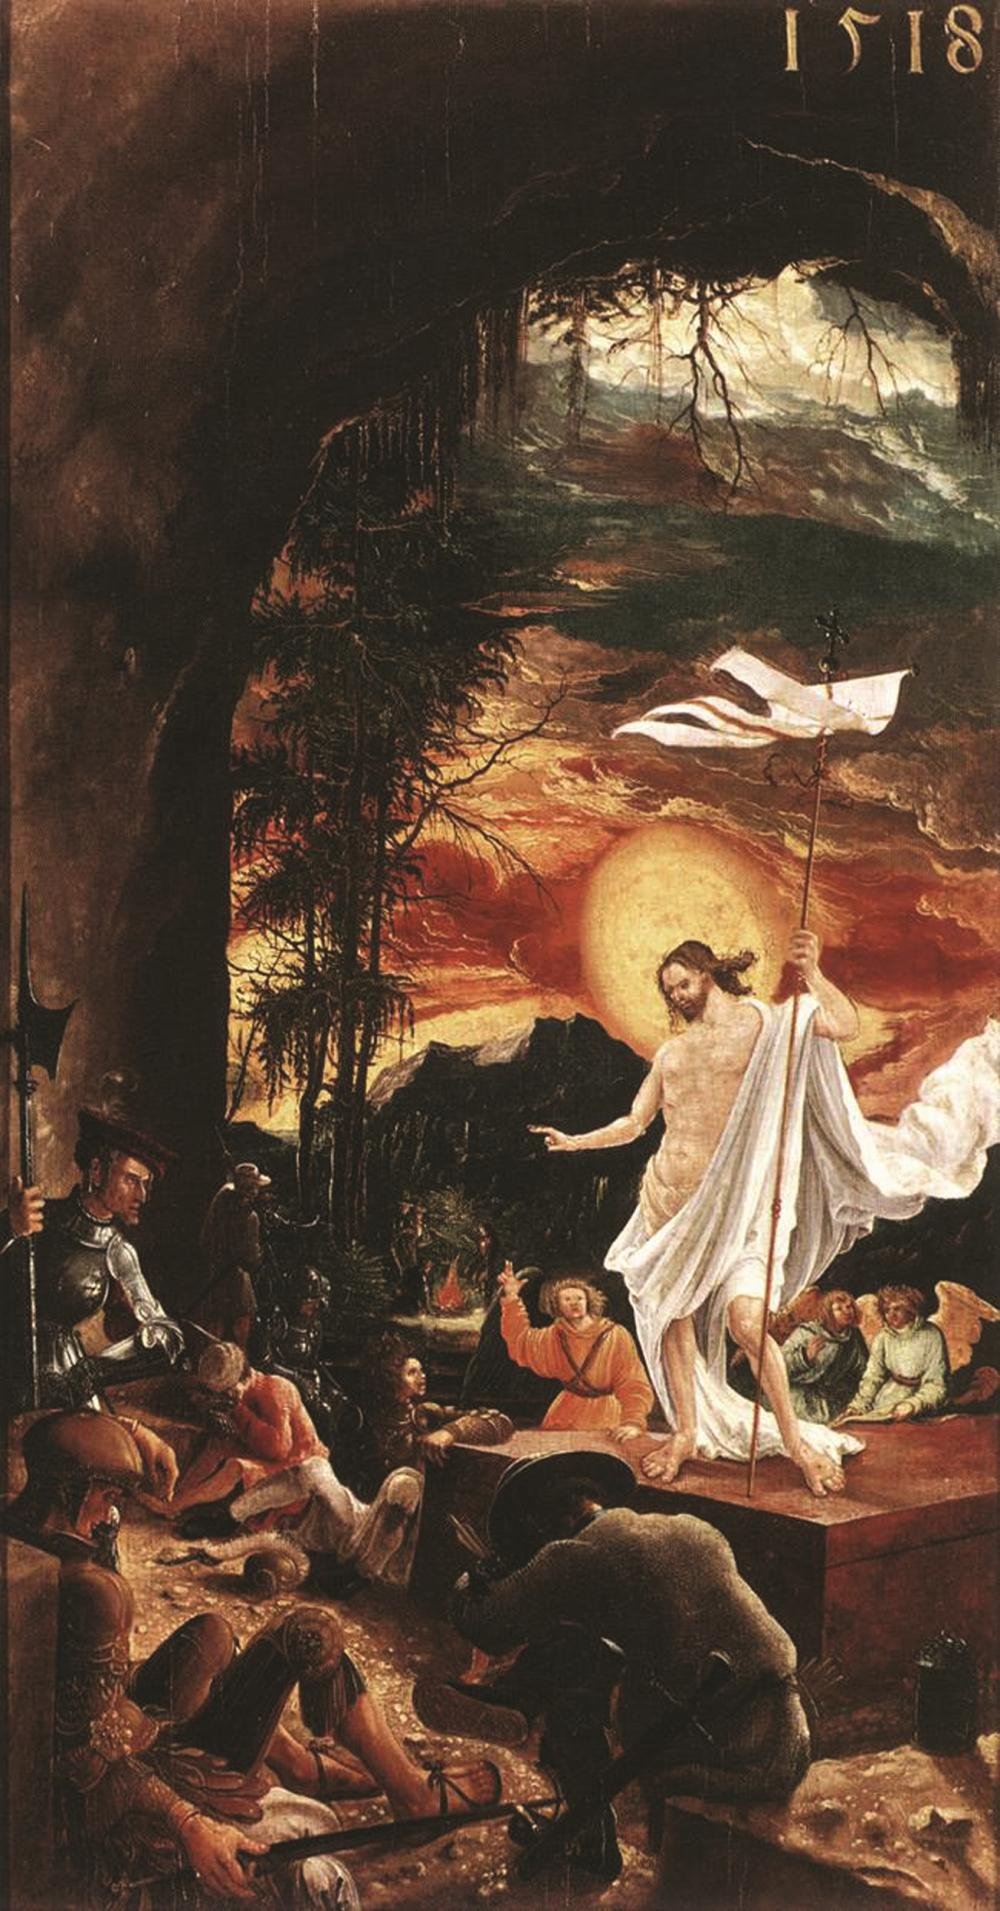 What was Jesus really like after the Resurrection? How would he look and sound?